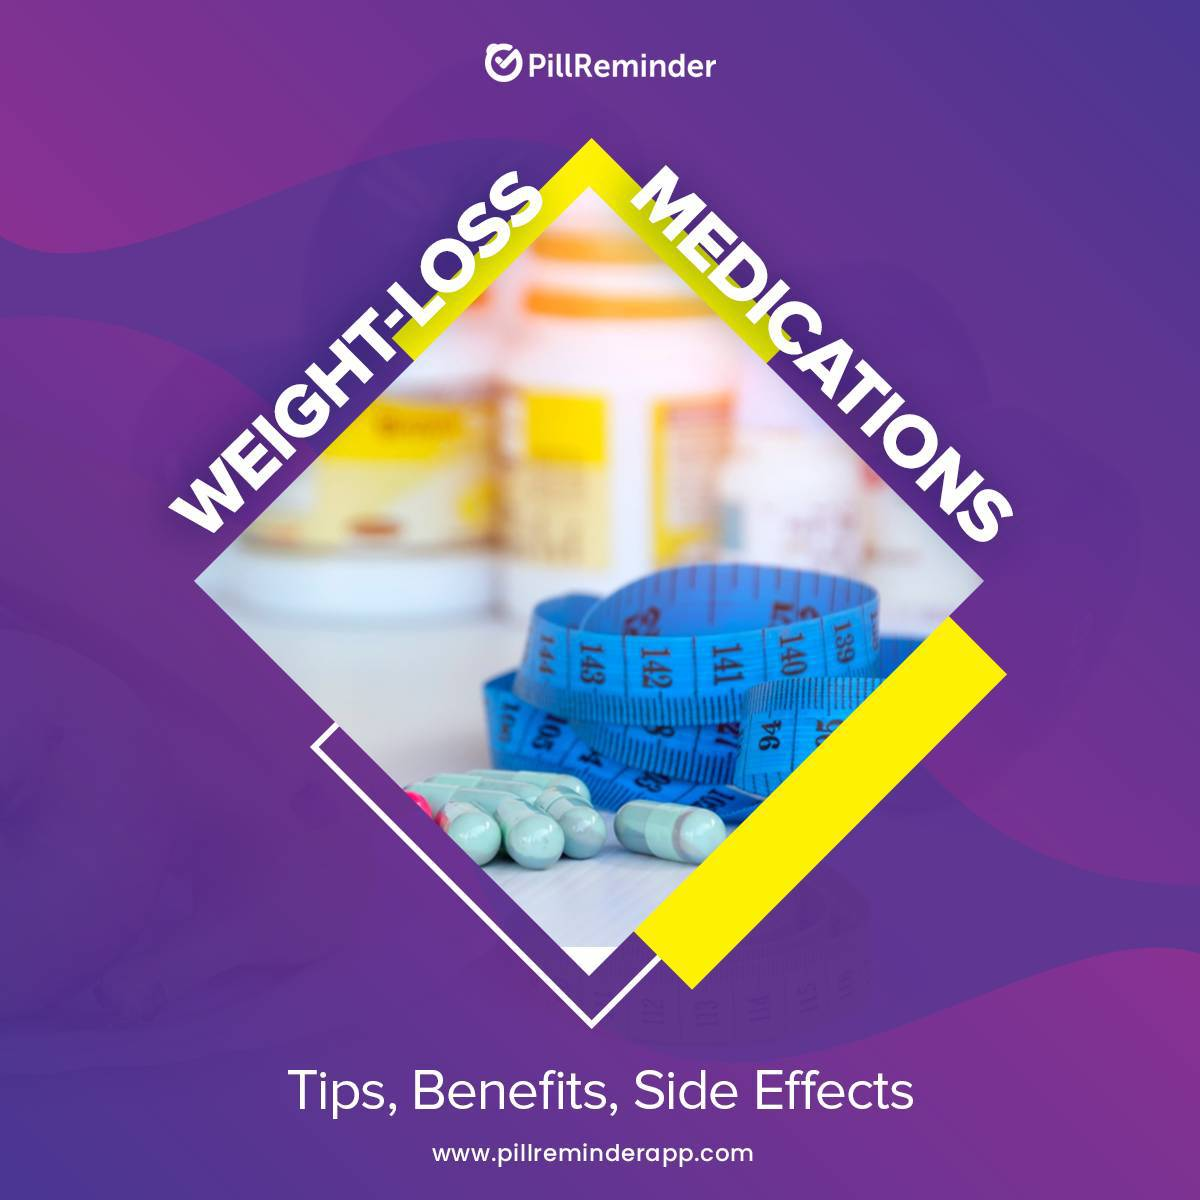 Weight-Loss Medications: Tips, Benefits, Side Effects